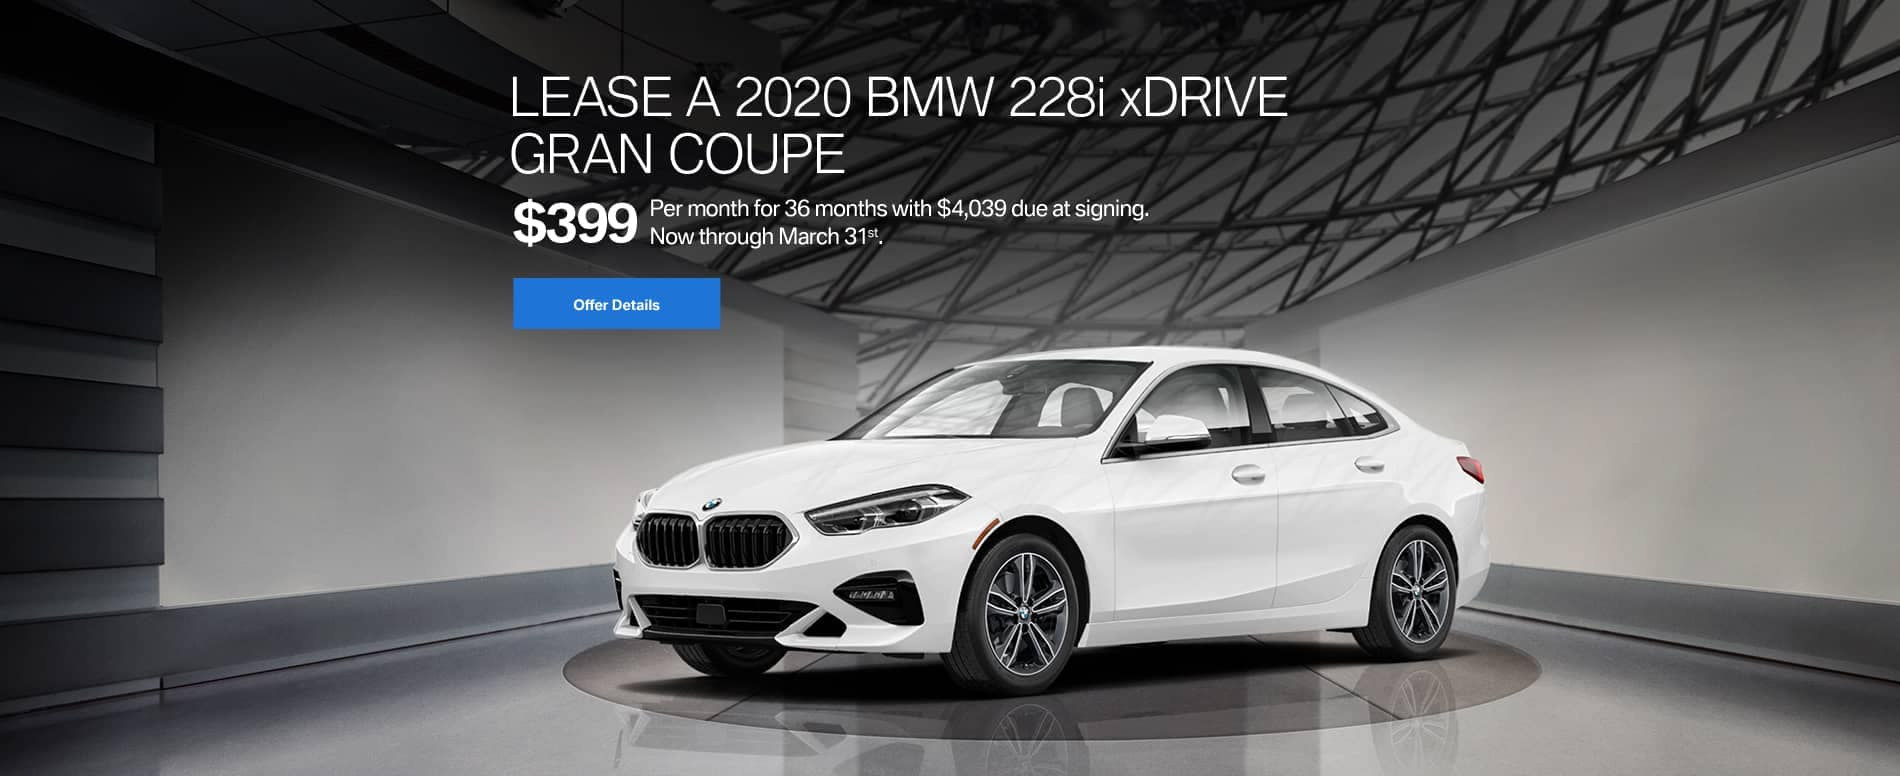 banner for BMW 228i xDrive